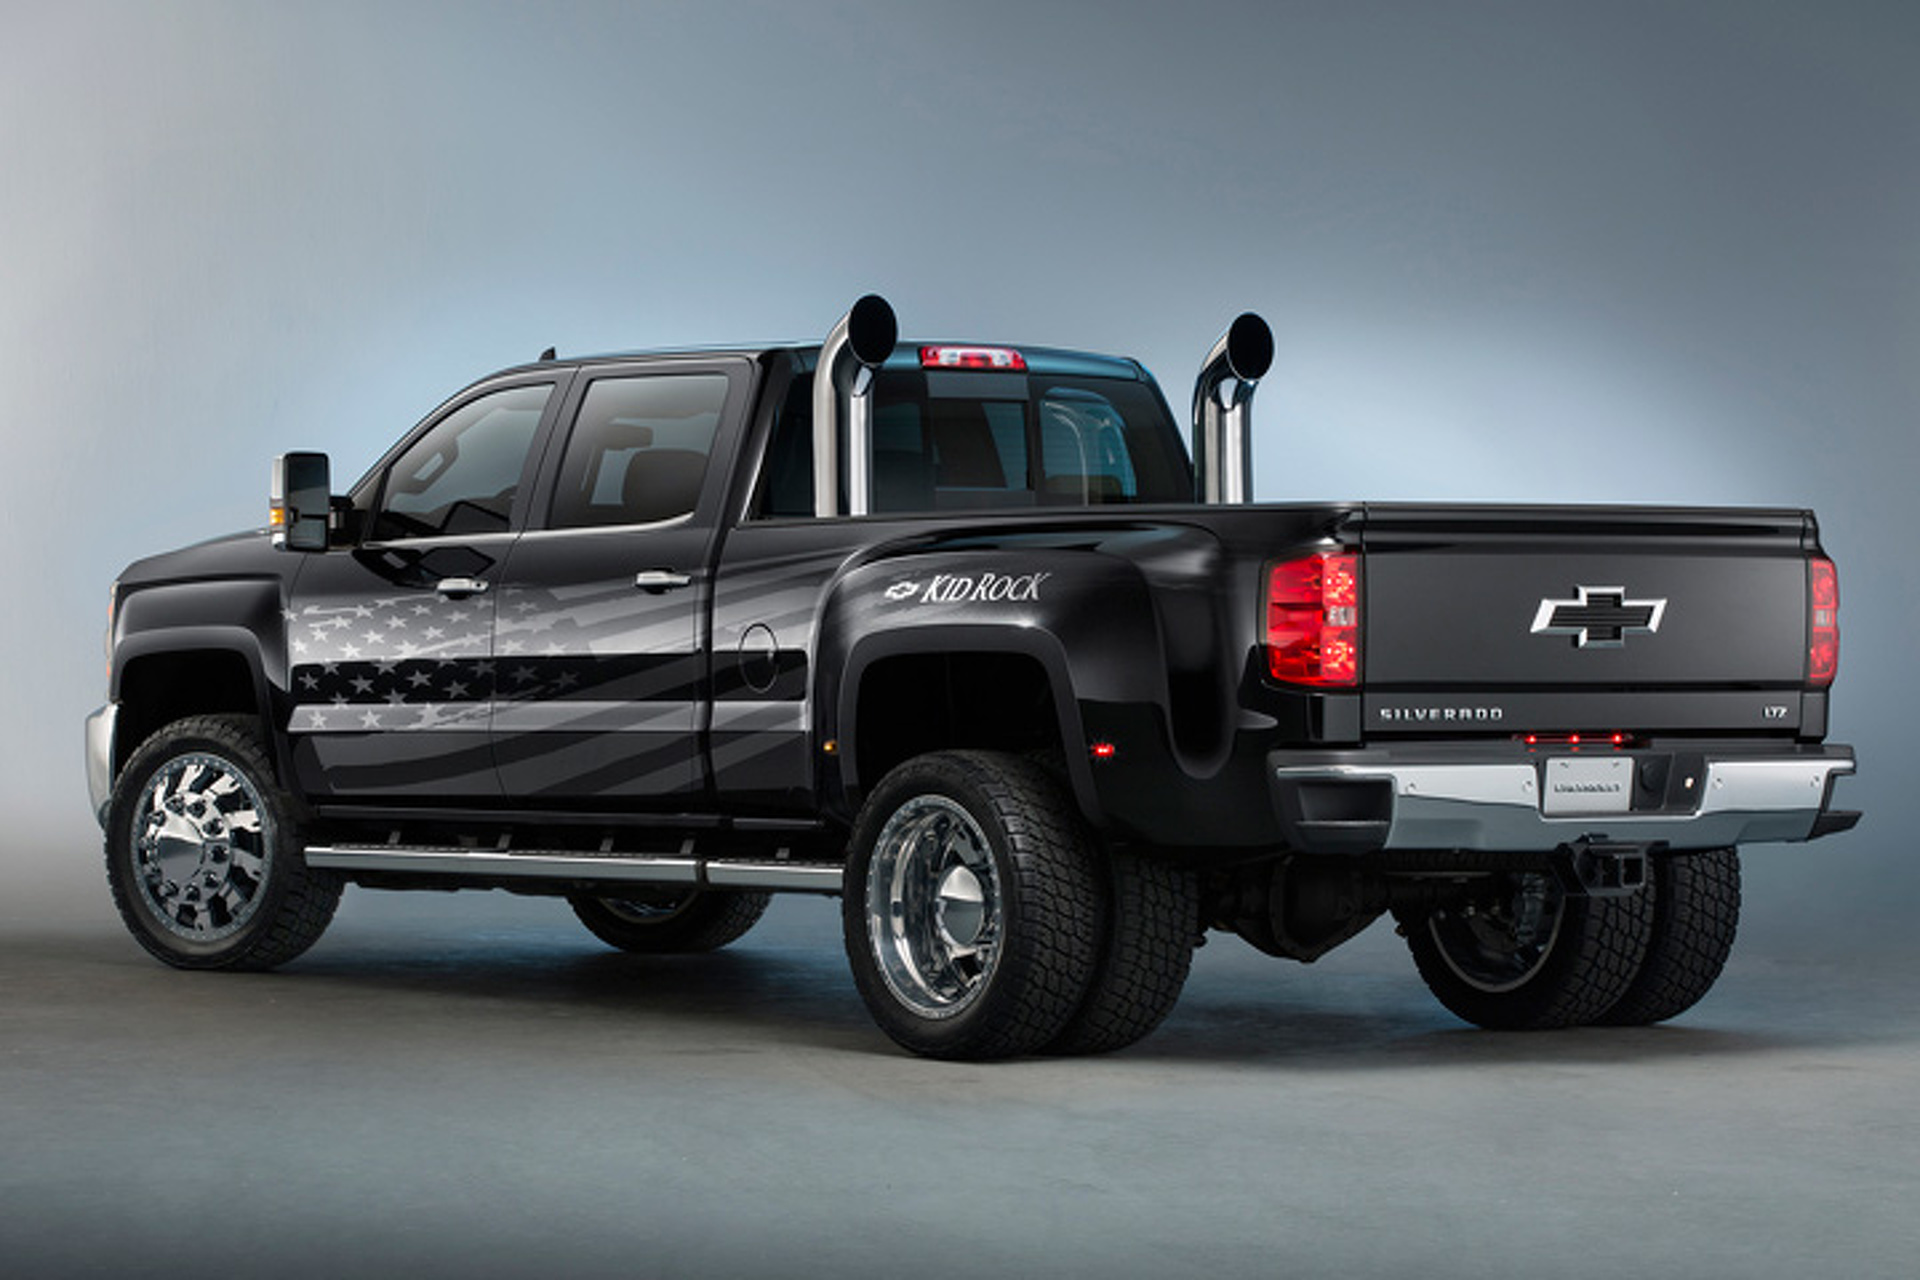 Kid Rock's Custom Chevy Silverado Goes BIG for U.S. Workers